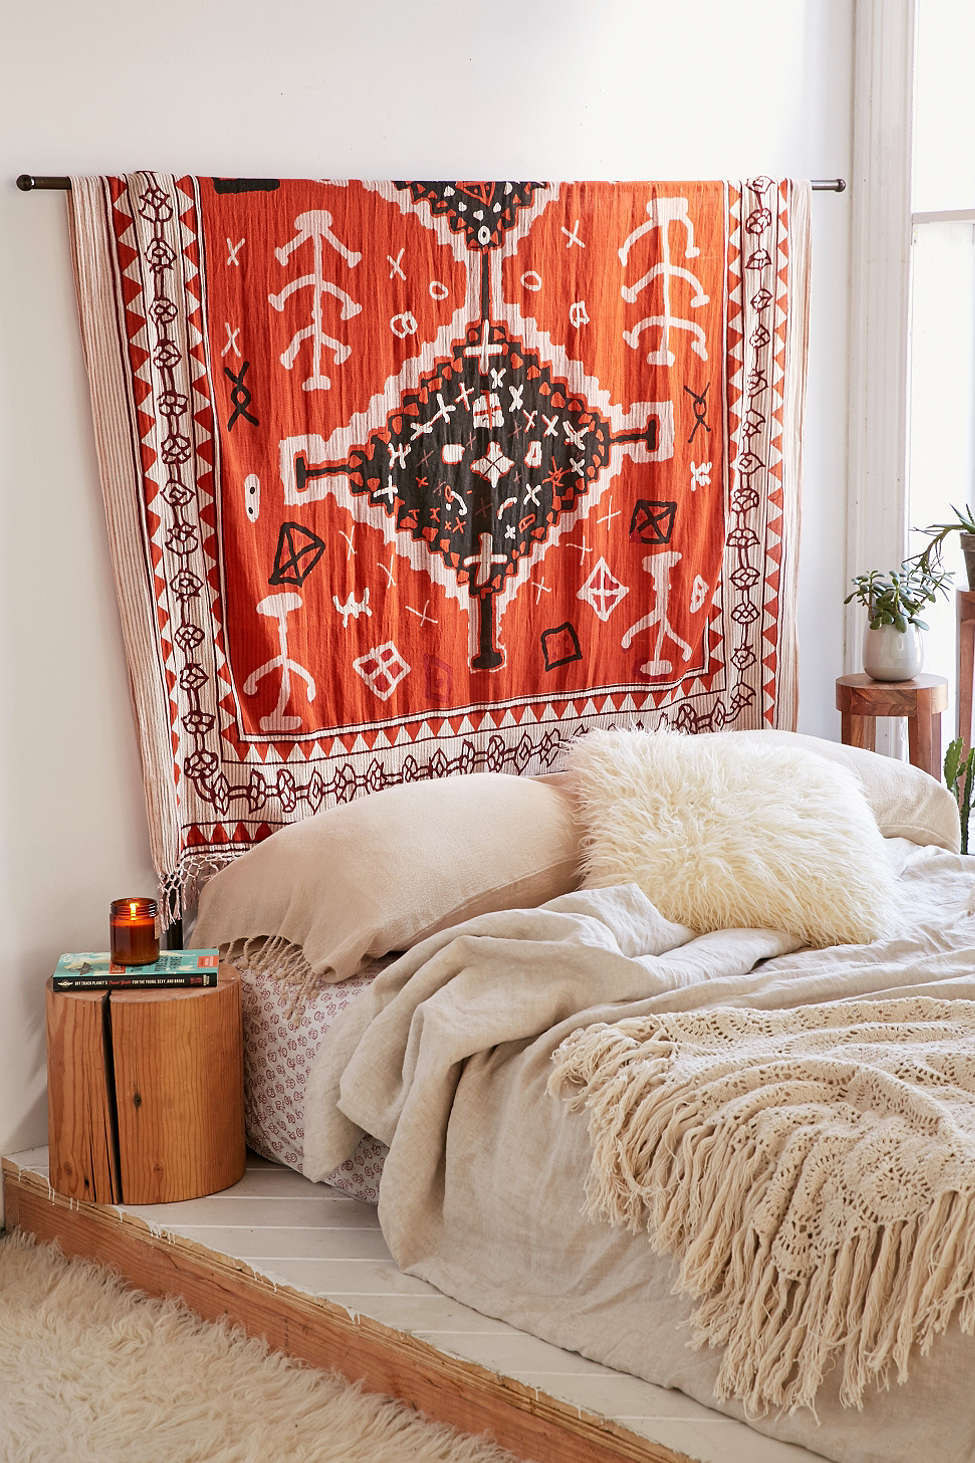 9 Ways To Make Your Home Look Like A Hippie Hideaway